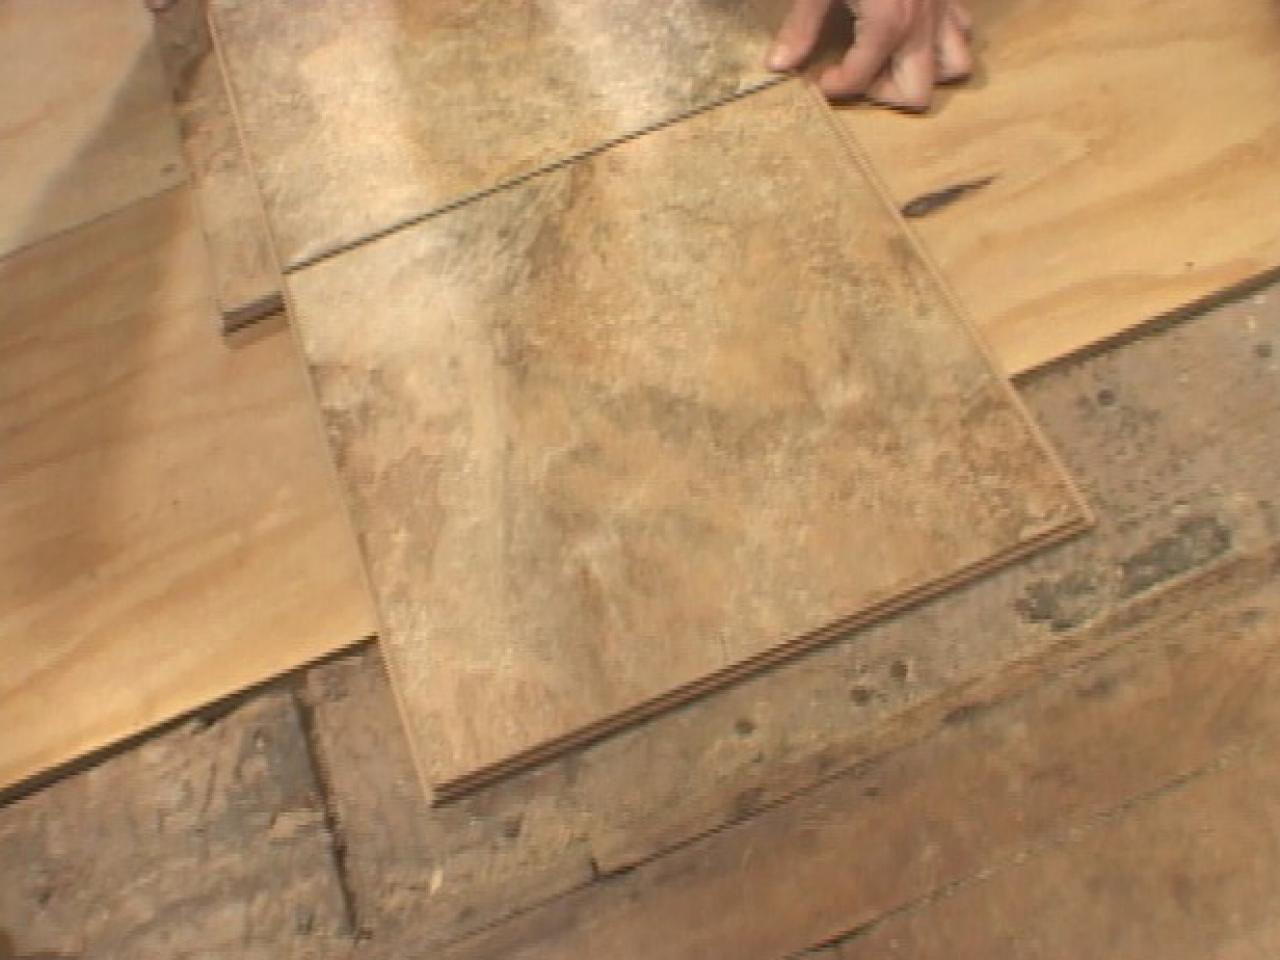 How to install snap together tile flooring how tos diy dry fit tiles to determine layout dailygadgetfo Image collections